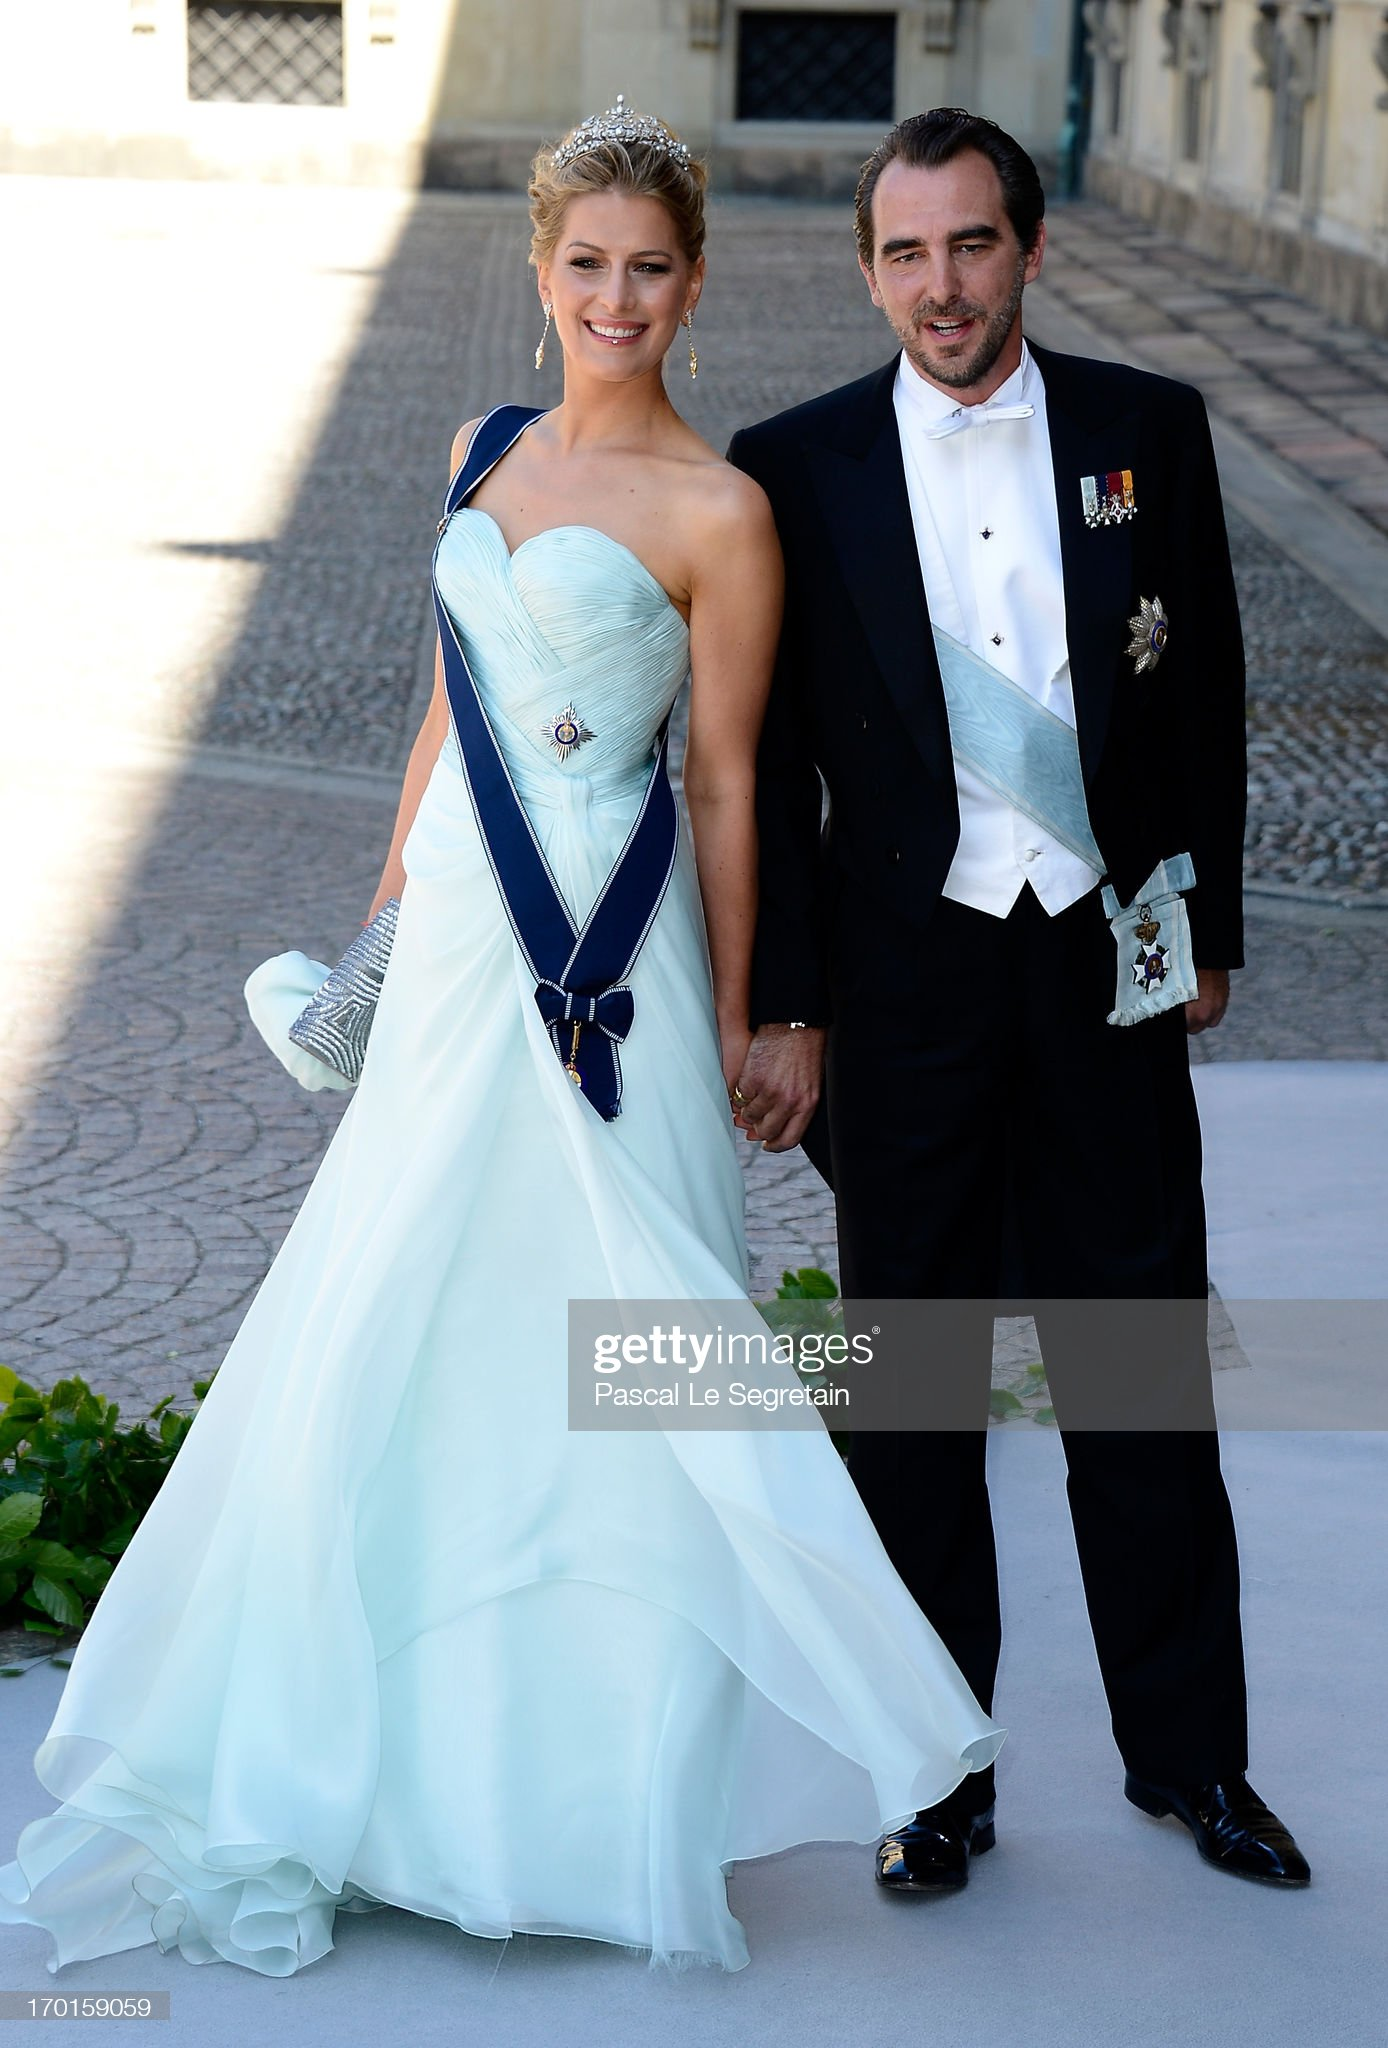 The Wedding Of Princess Madeleine & Christopher O'Neill : News Photo